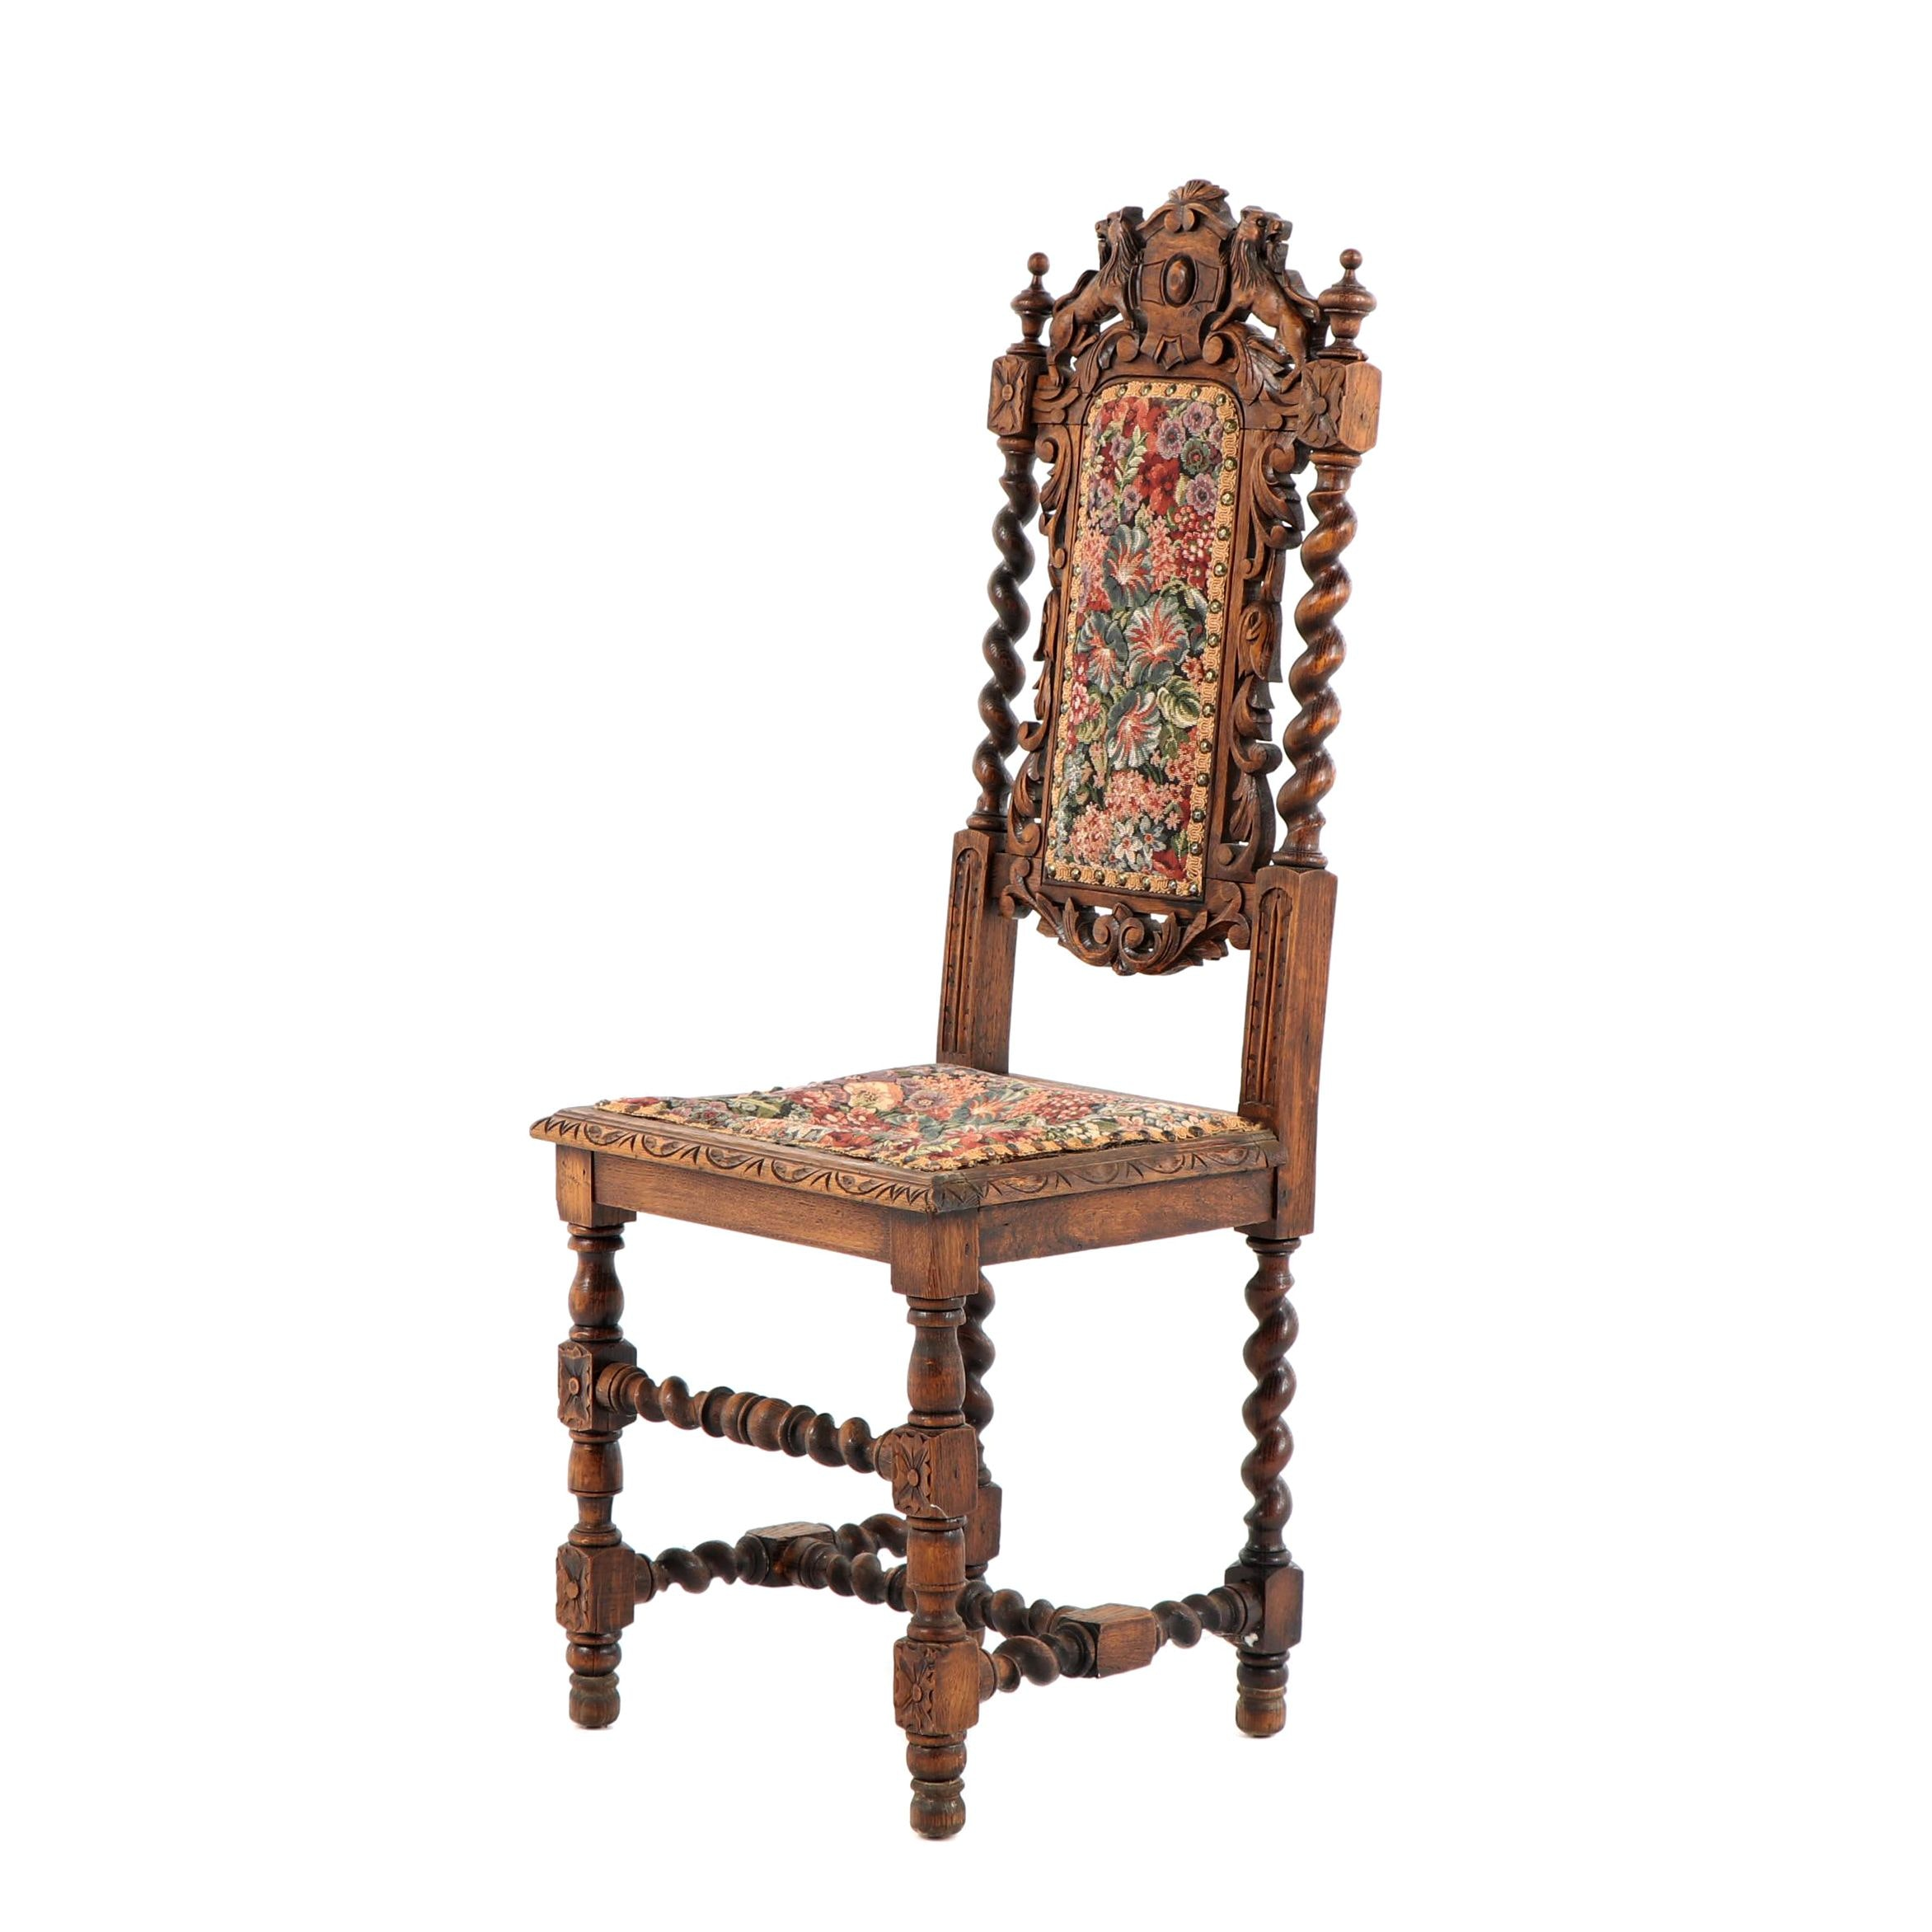 Renaissance Revival Style Carved Wood Side Chair, Early 20th Century